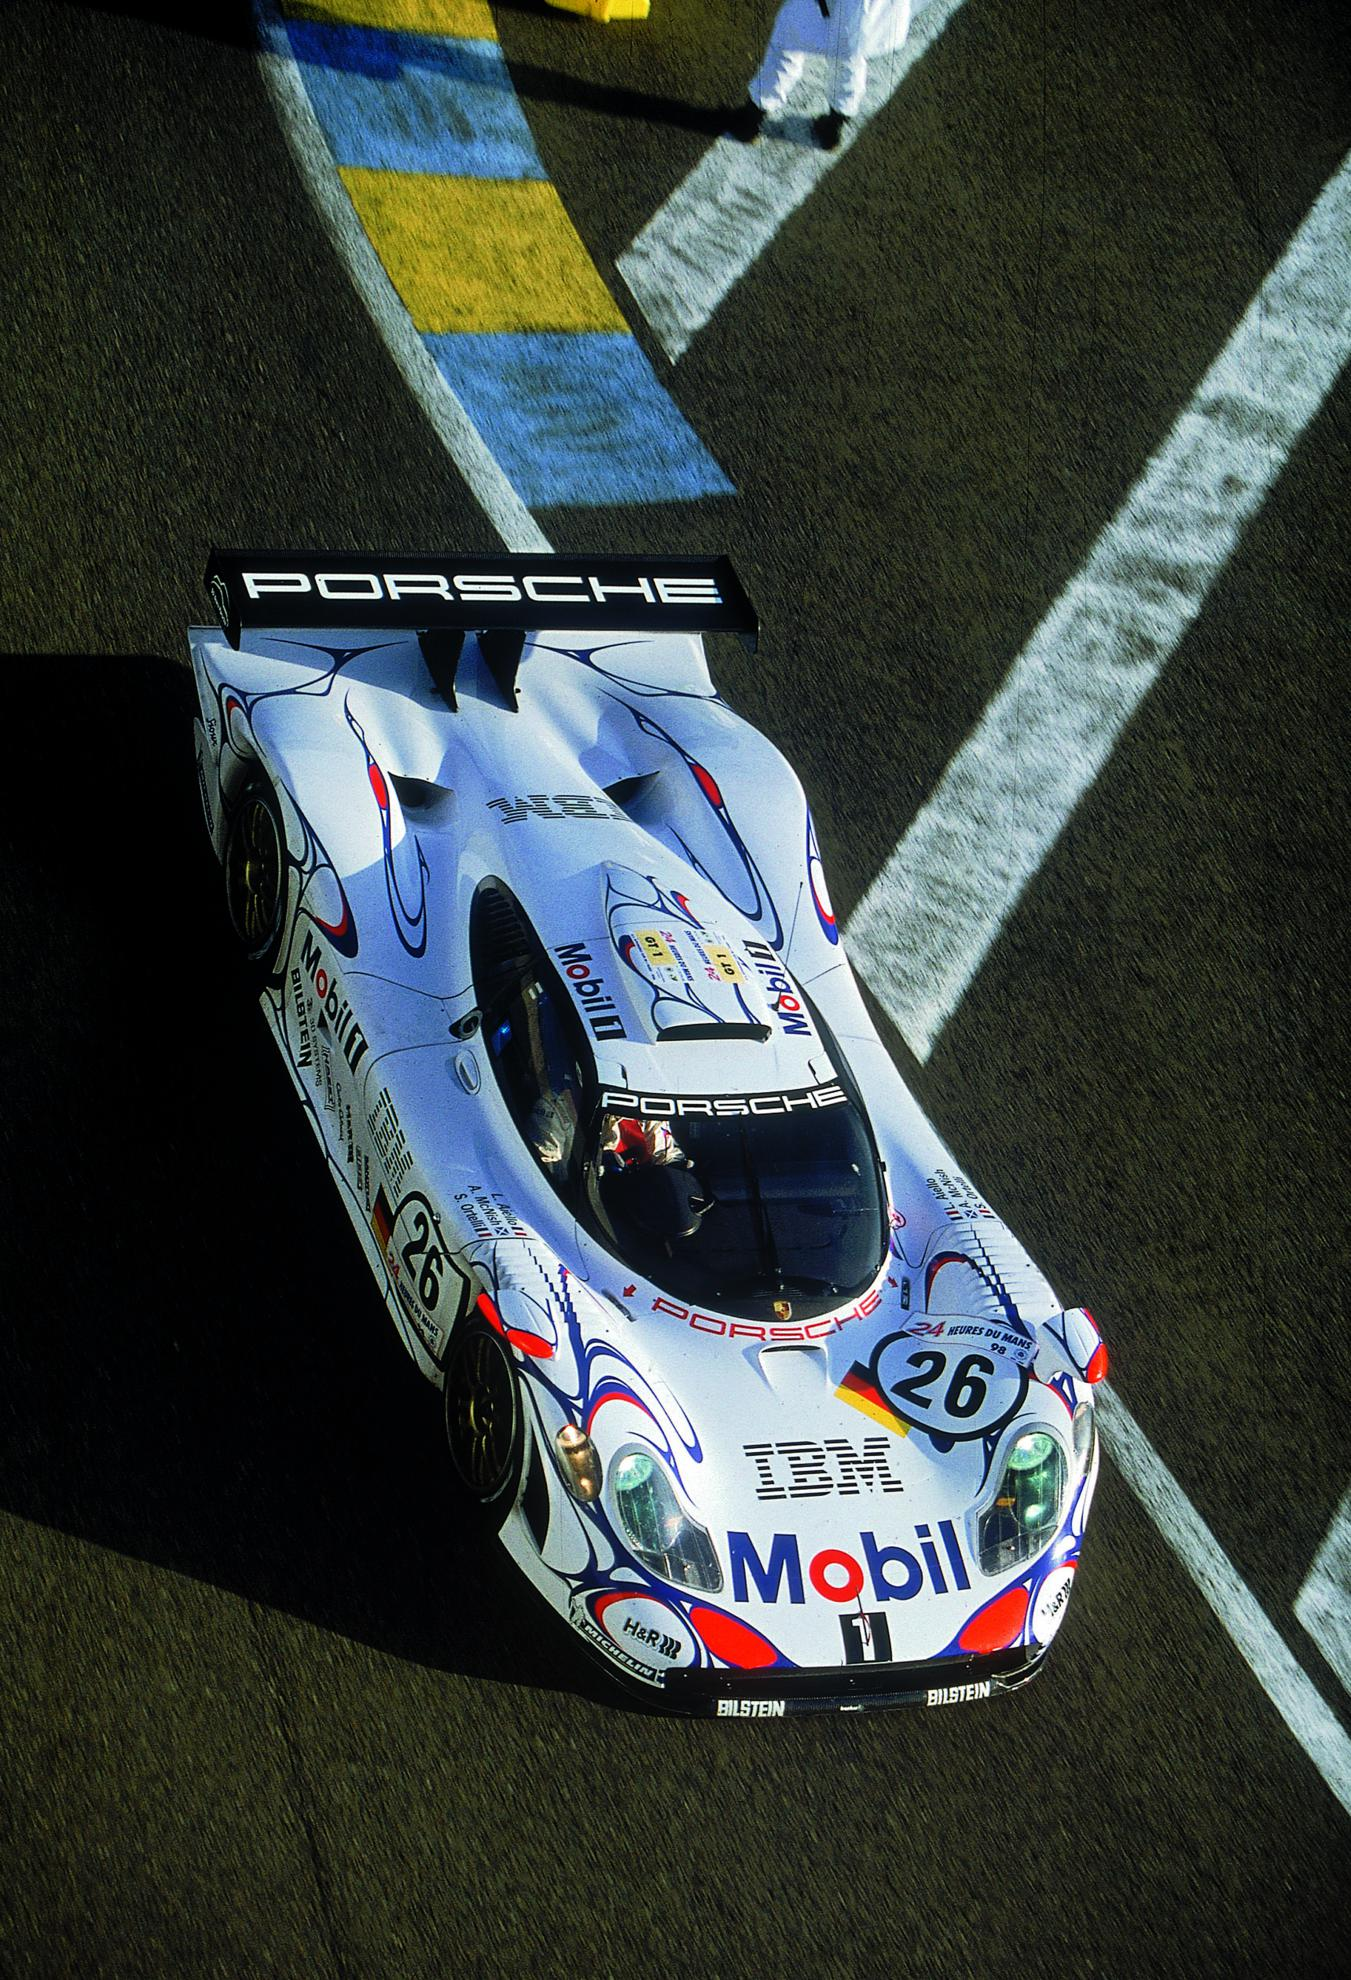 Porsche 911 GT1 which won Le Mans 1998